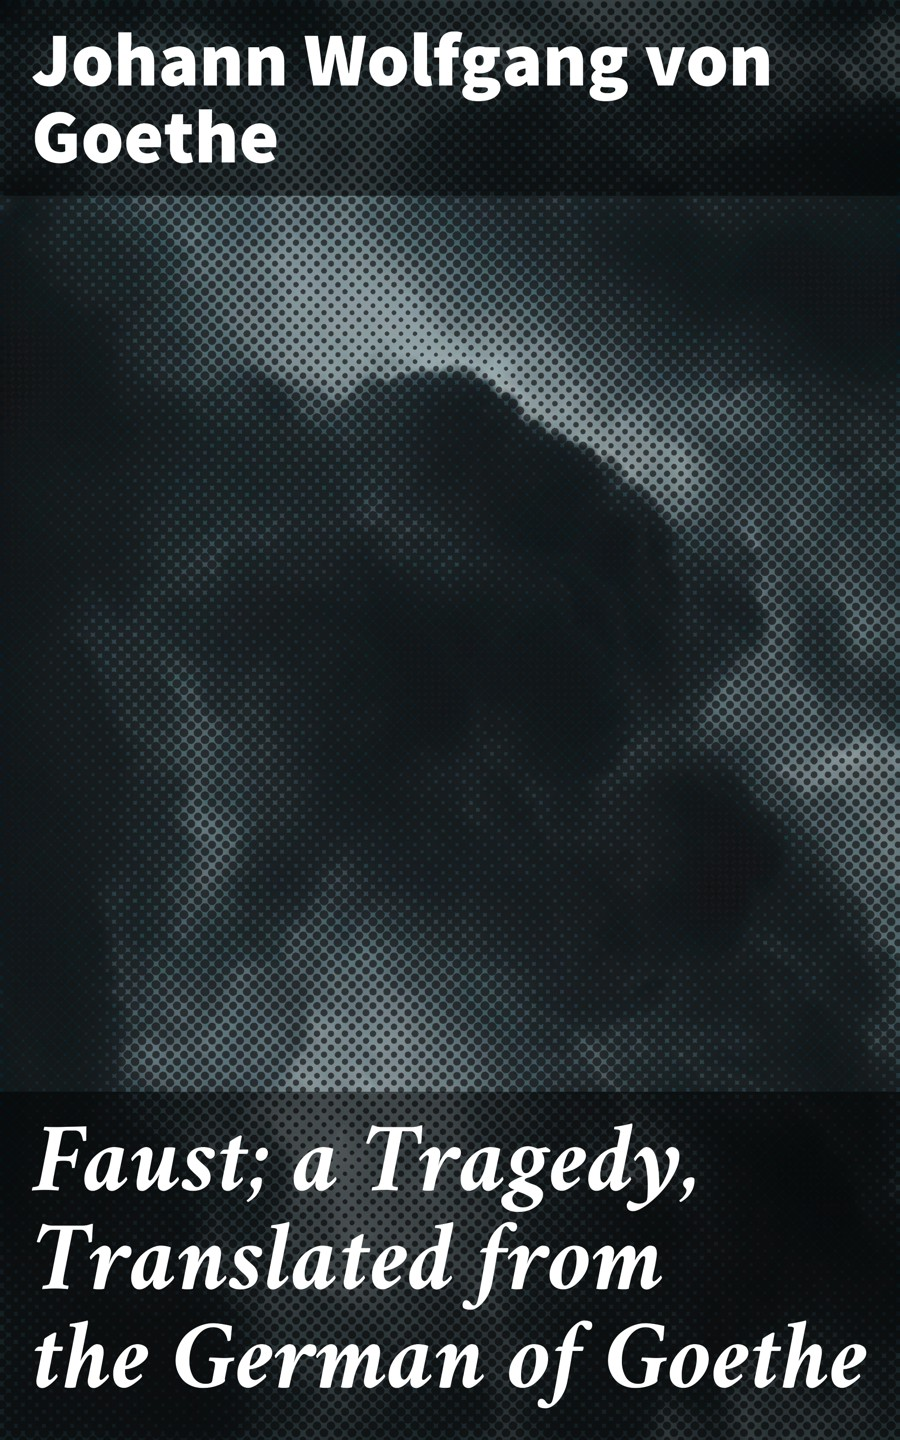 faust a tragedy translated from the german of goethe